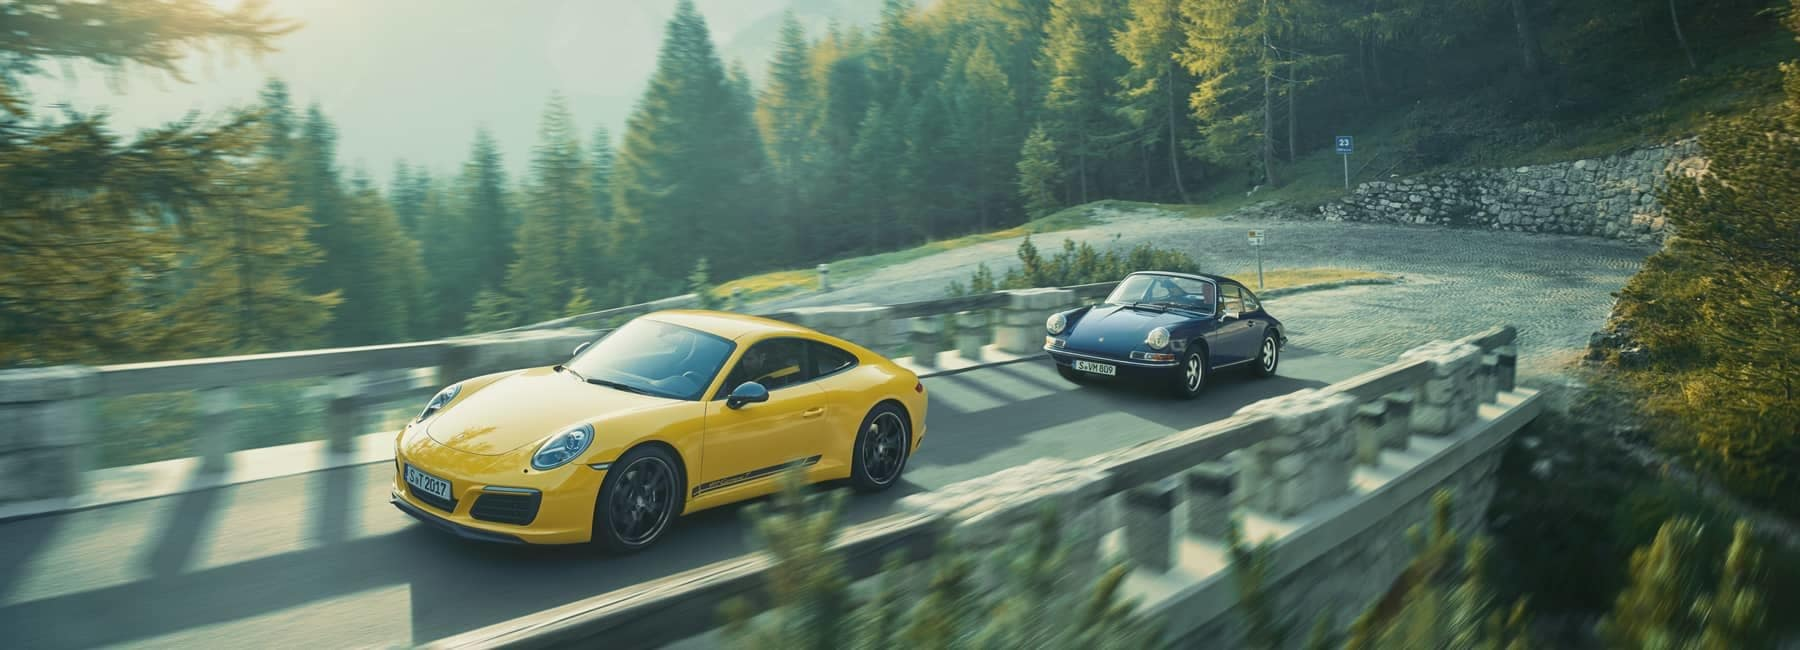 2019 Porsche 911 Model Overview at Sewickley Porsche